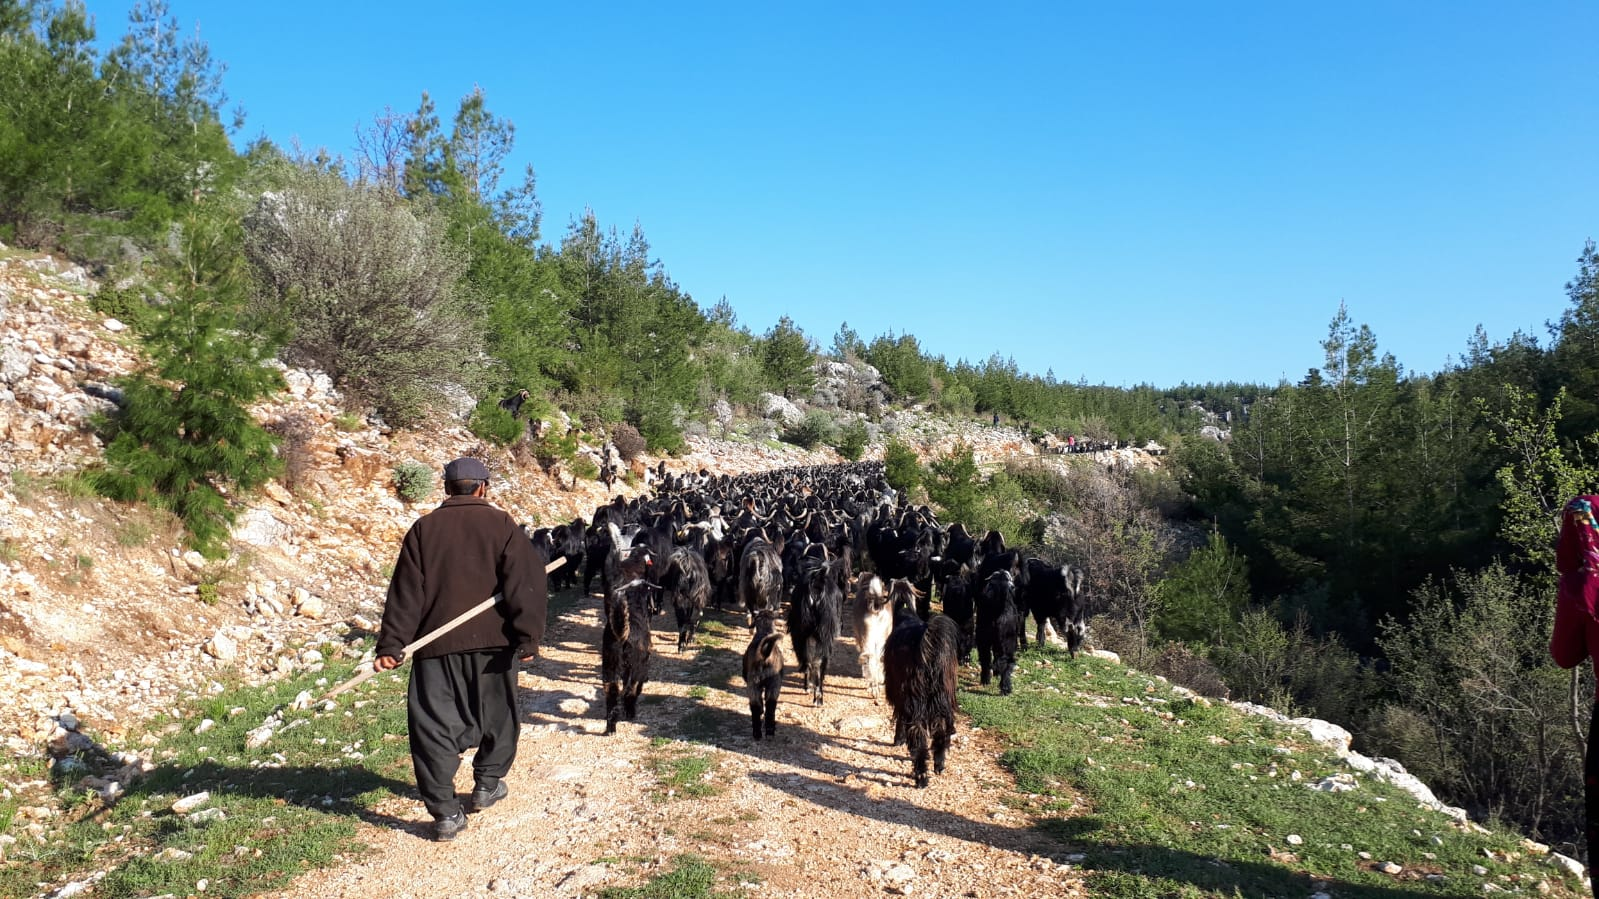 Herder and flock on road